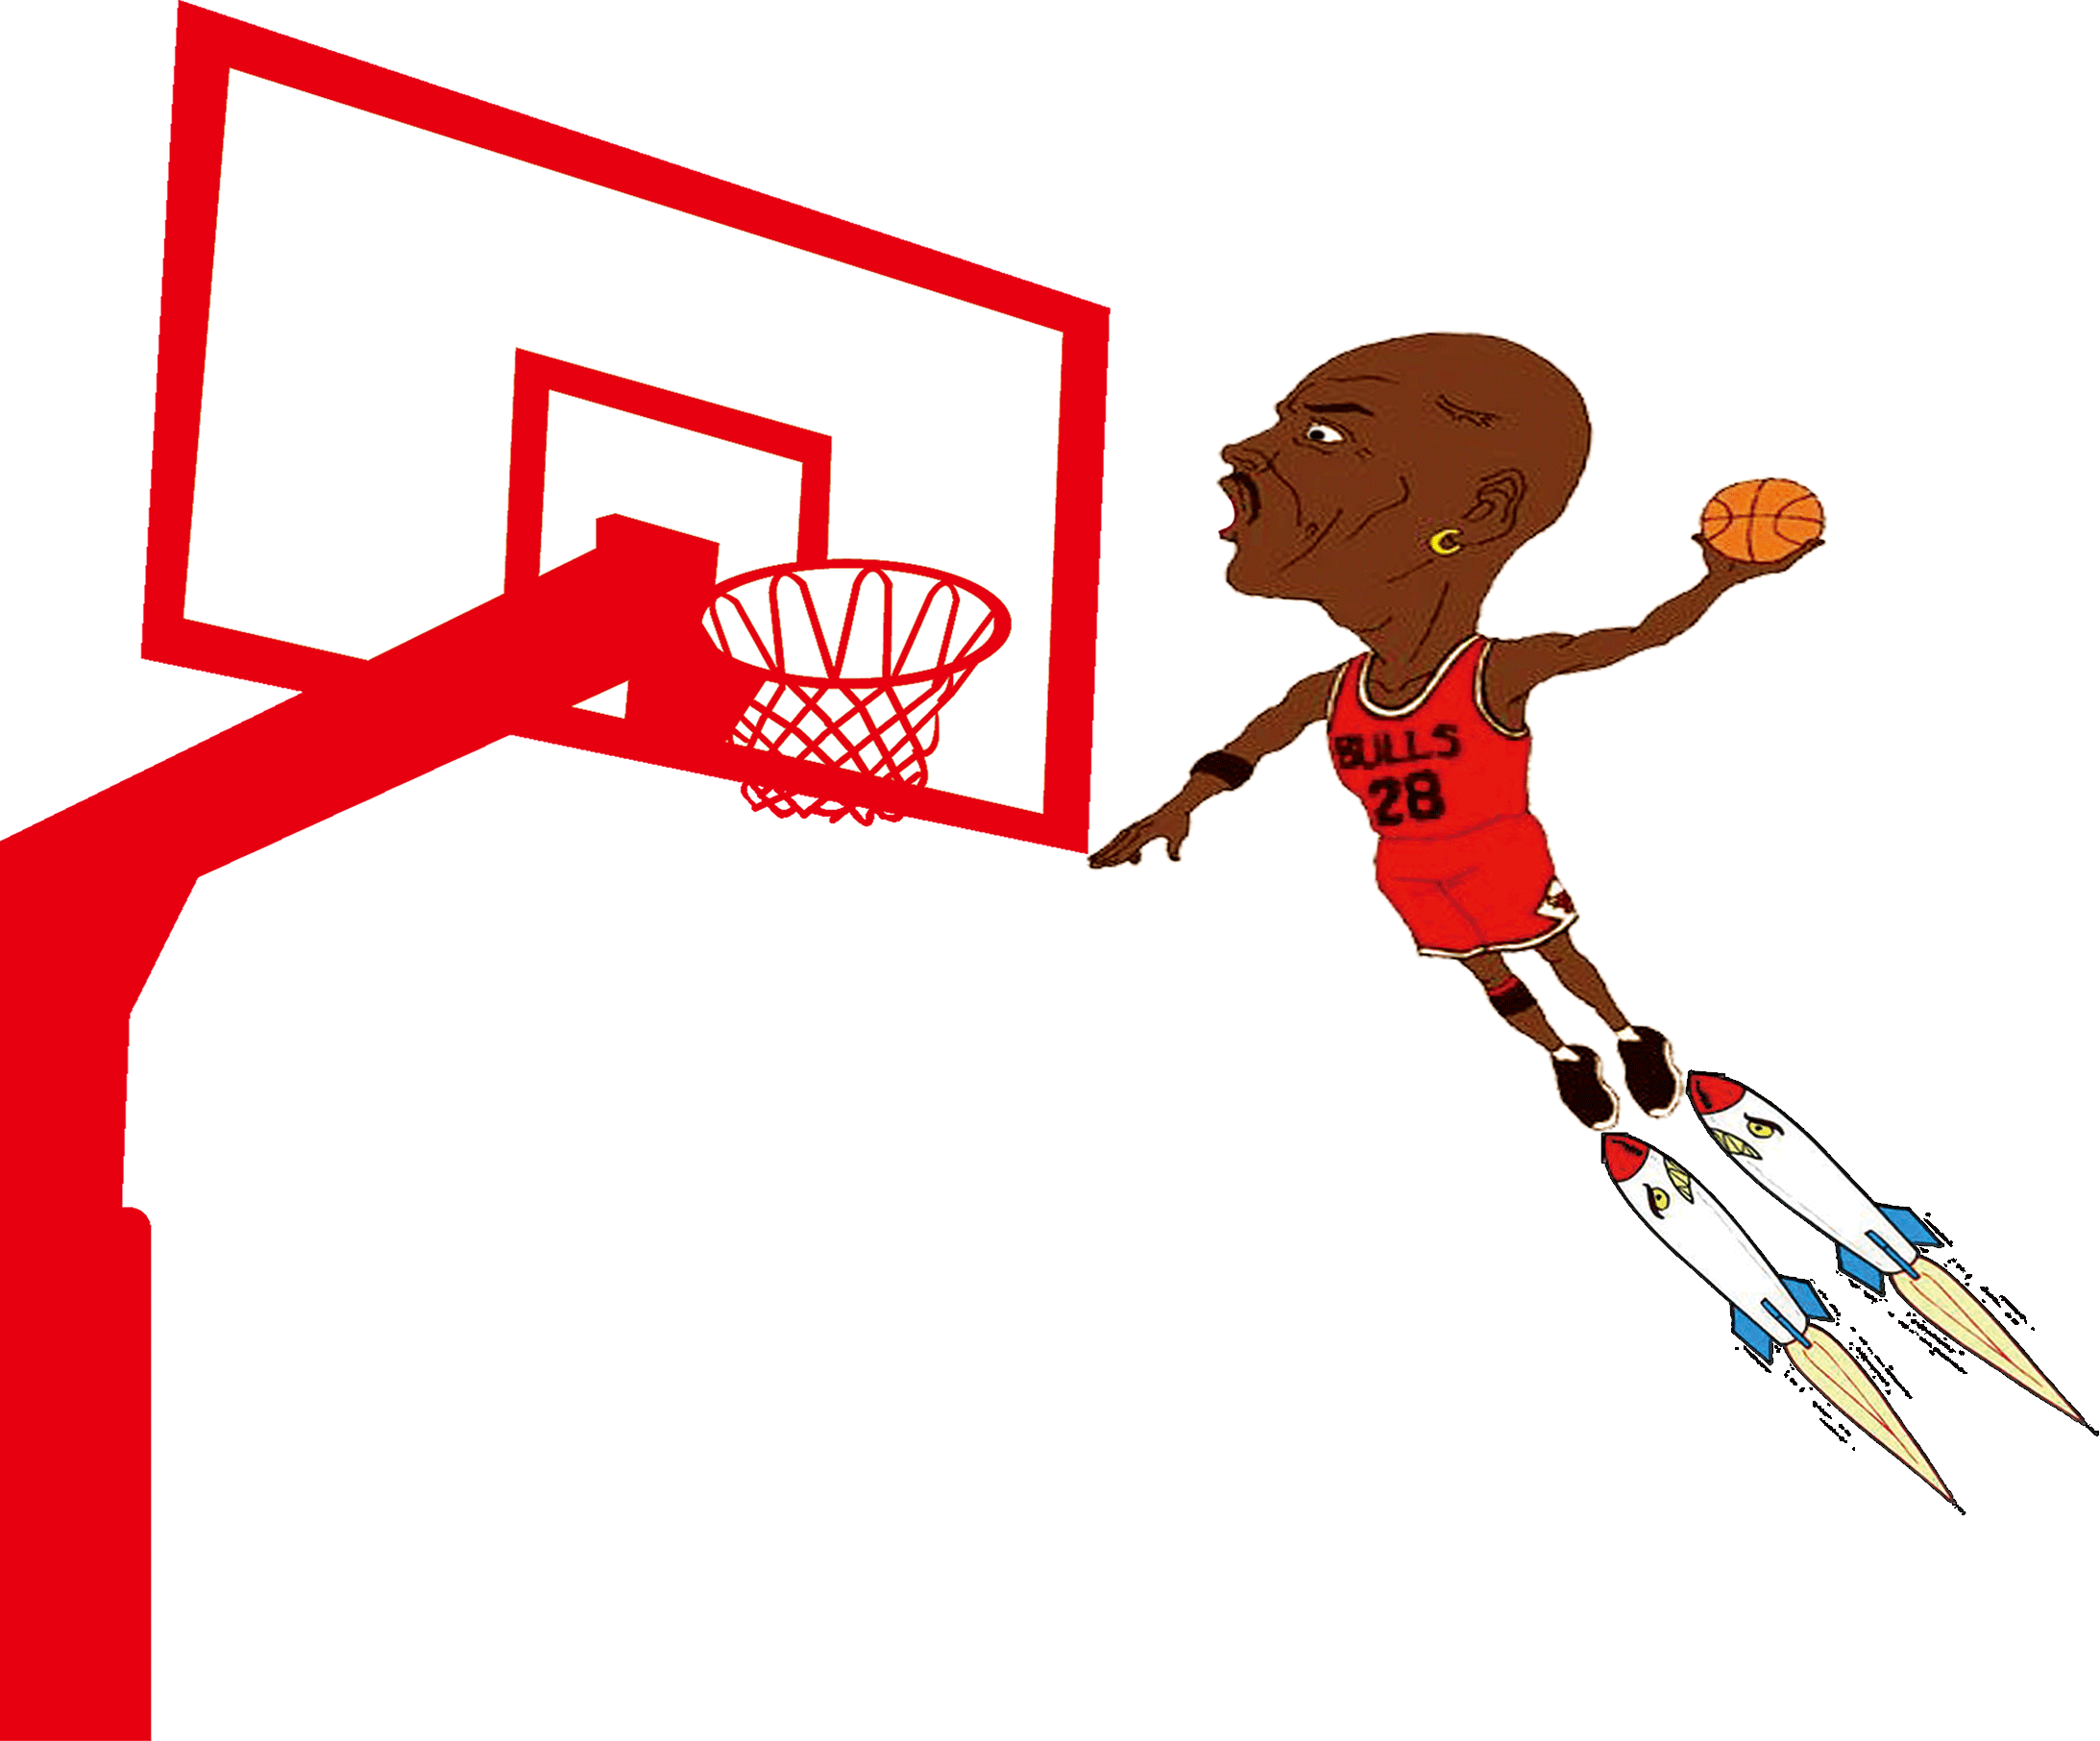 Creative clipart creative play. Basketball national games of